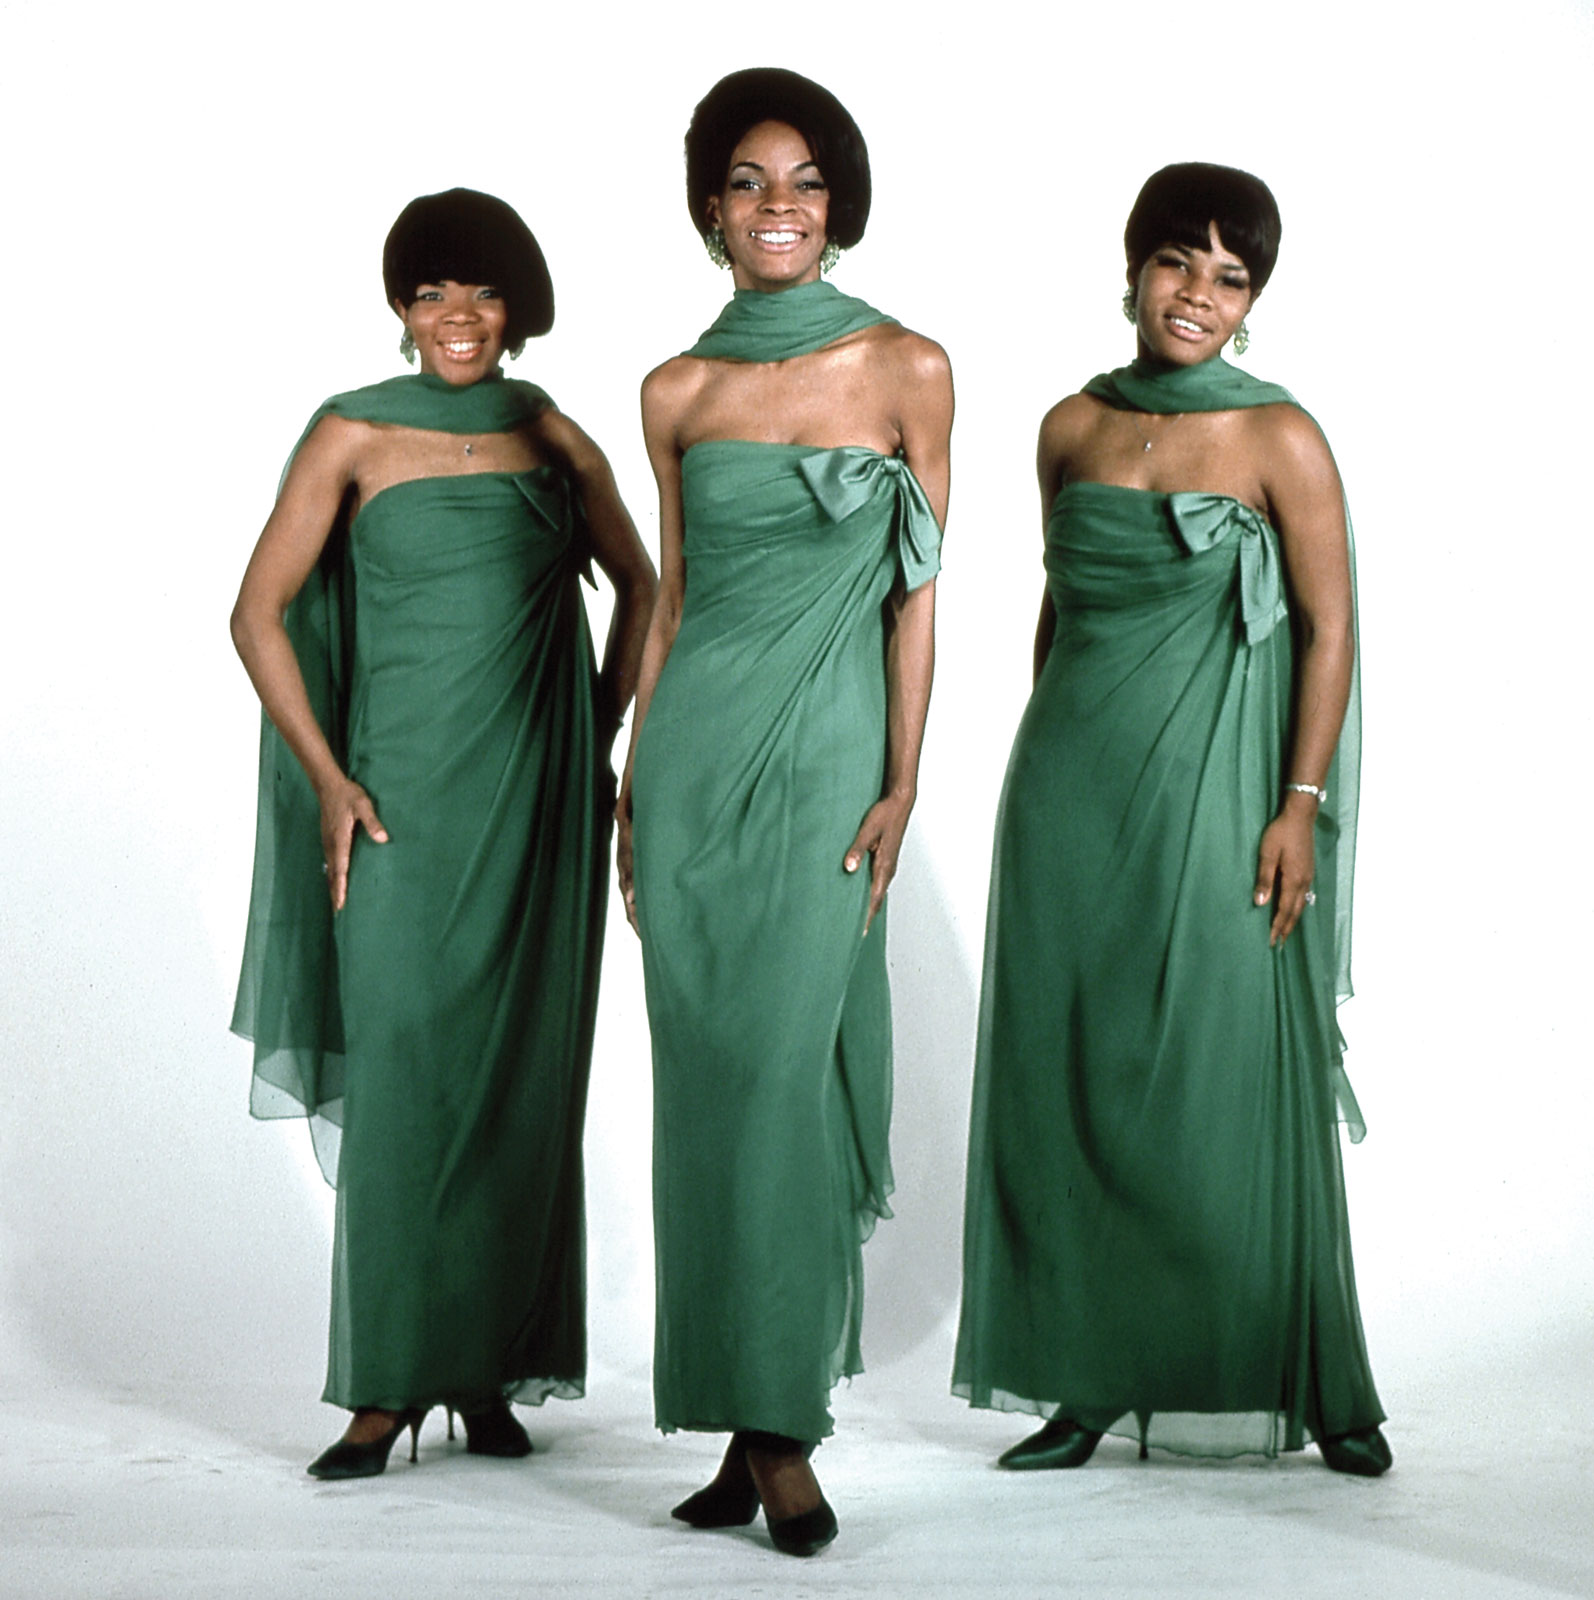 Martha And The Vandellas: Nowhere To Run